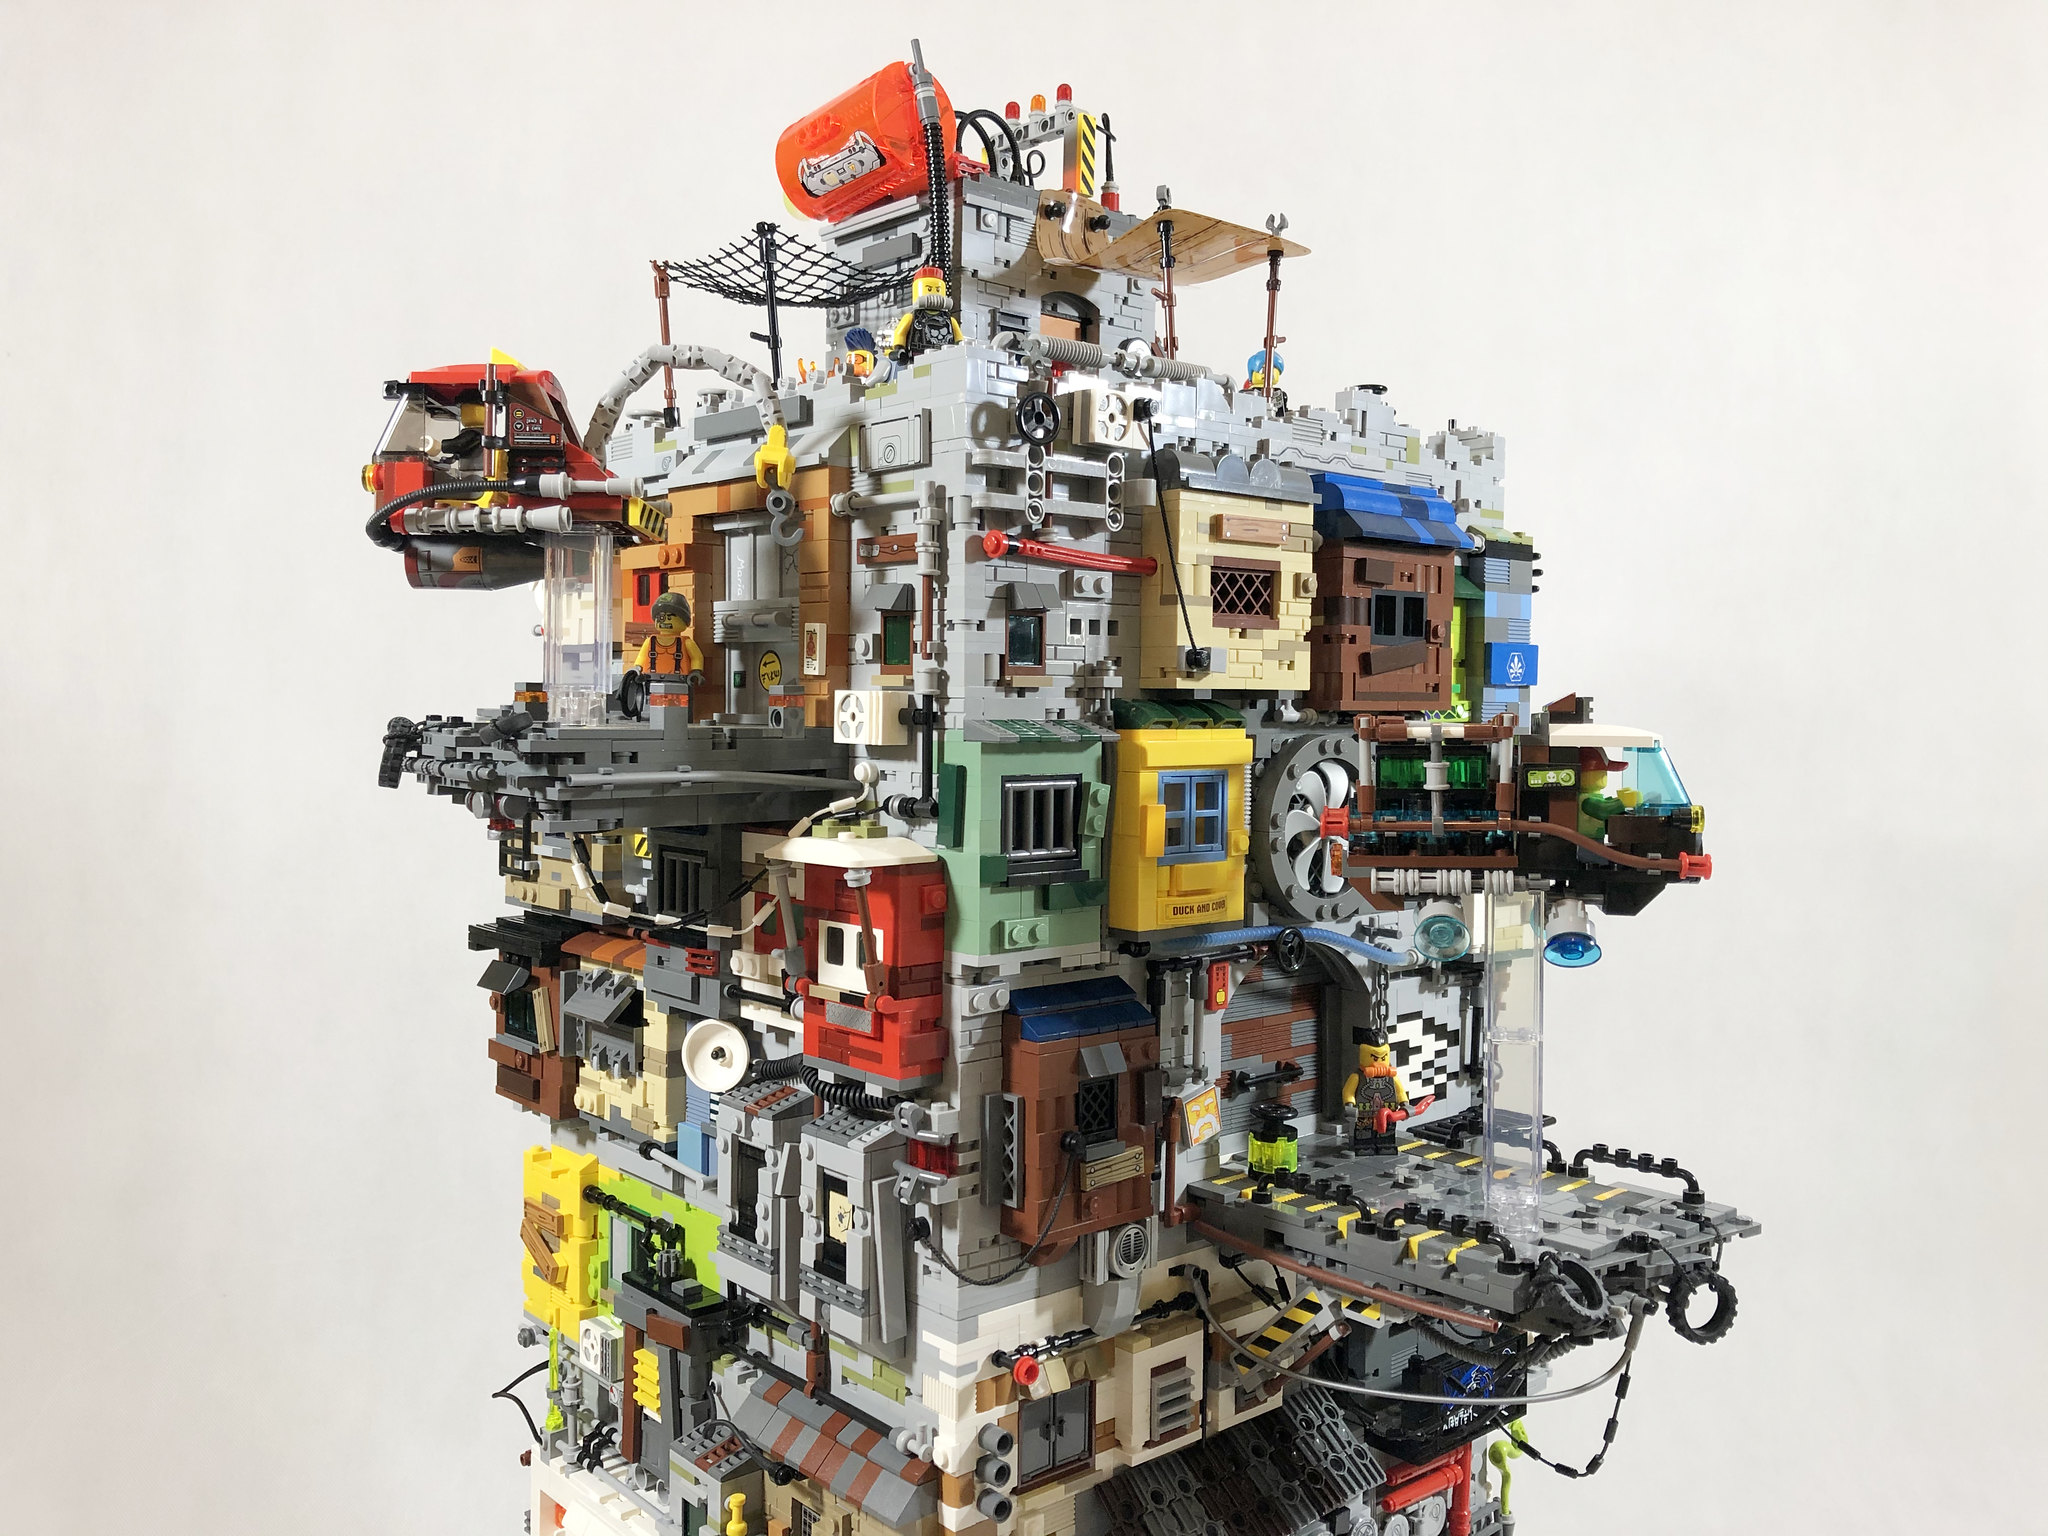 Stunning stacked city keeps going, and going, and going